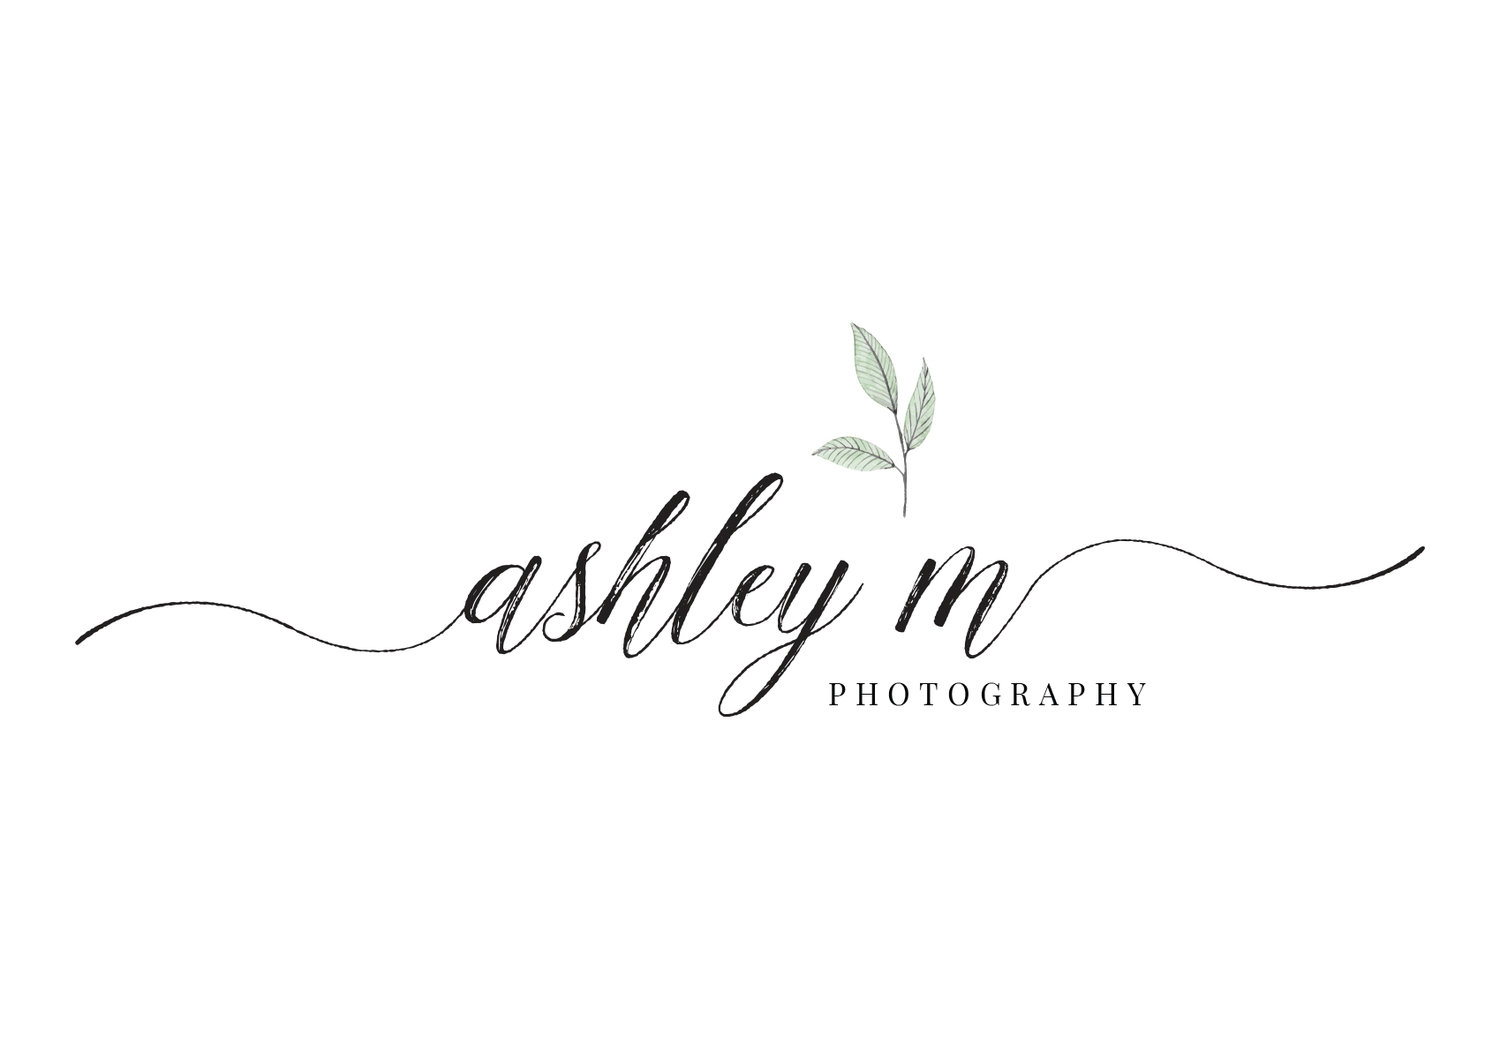 Ashley M Photography